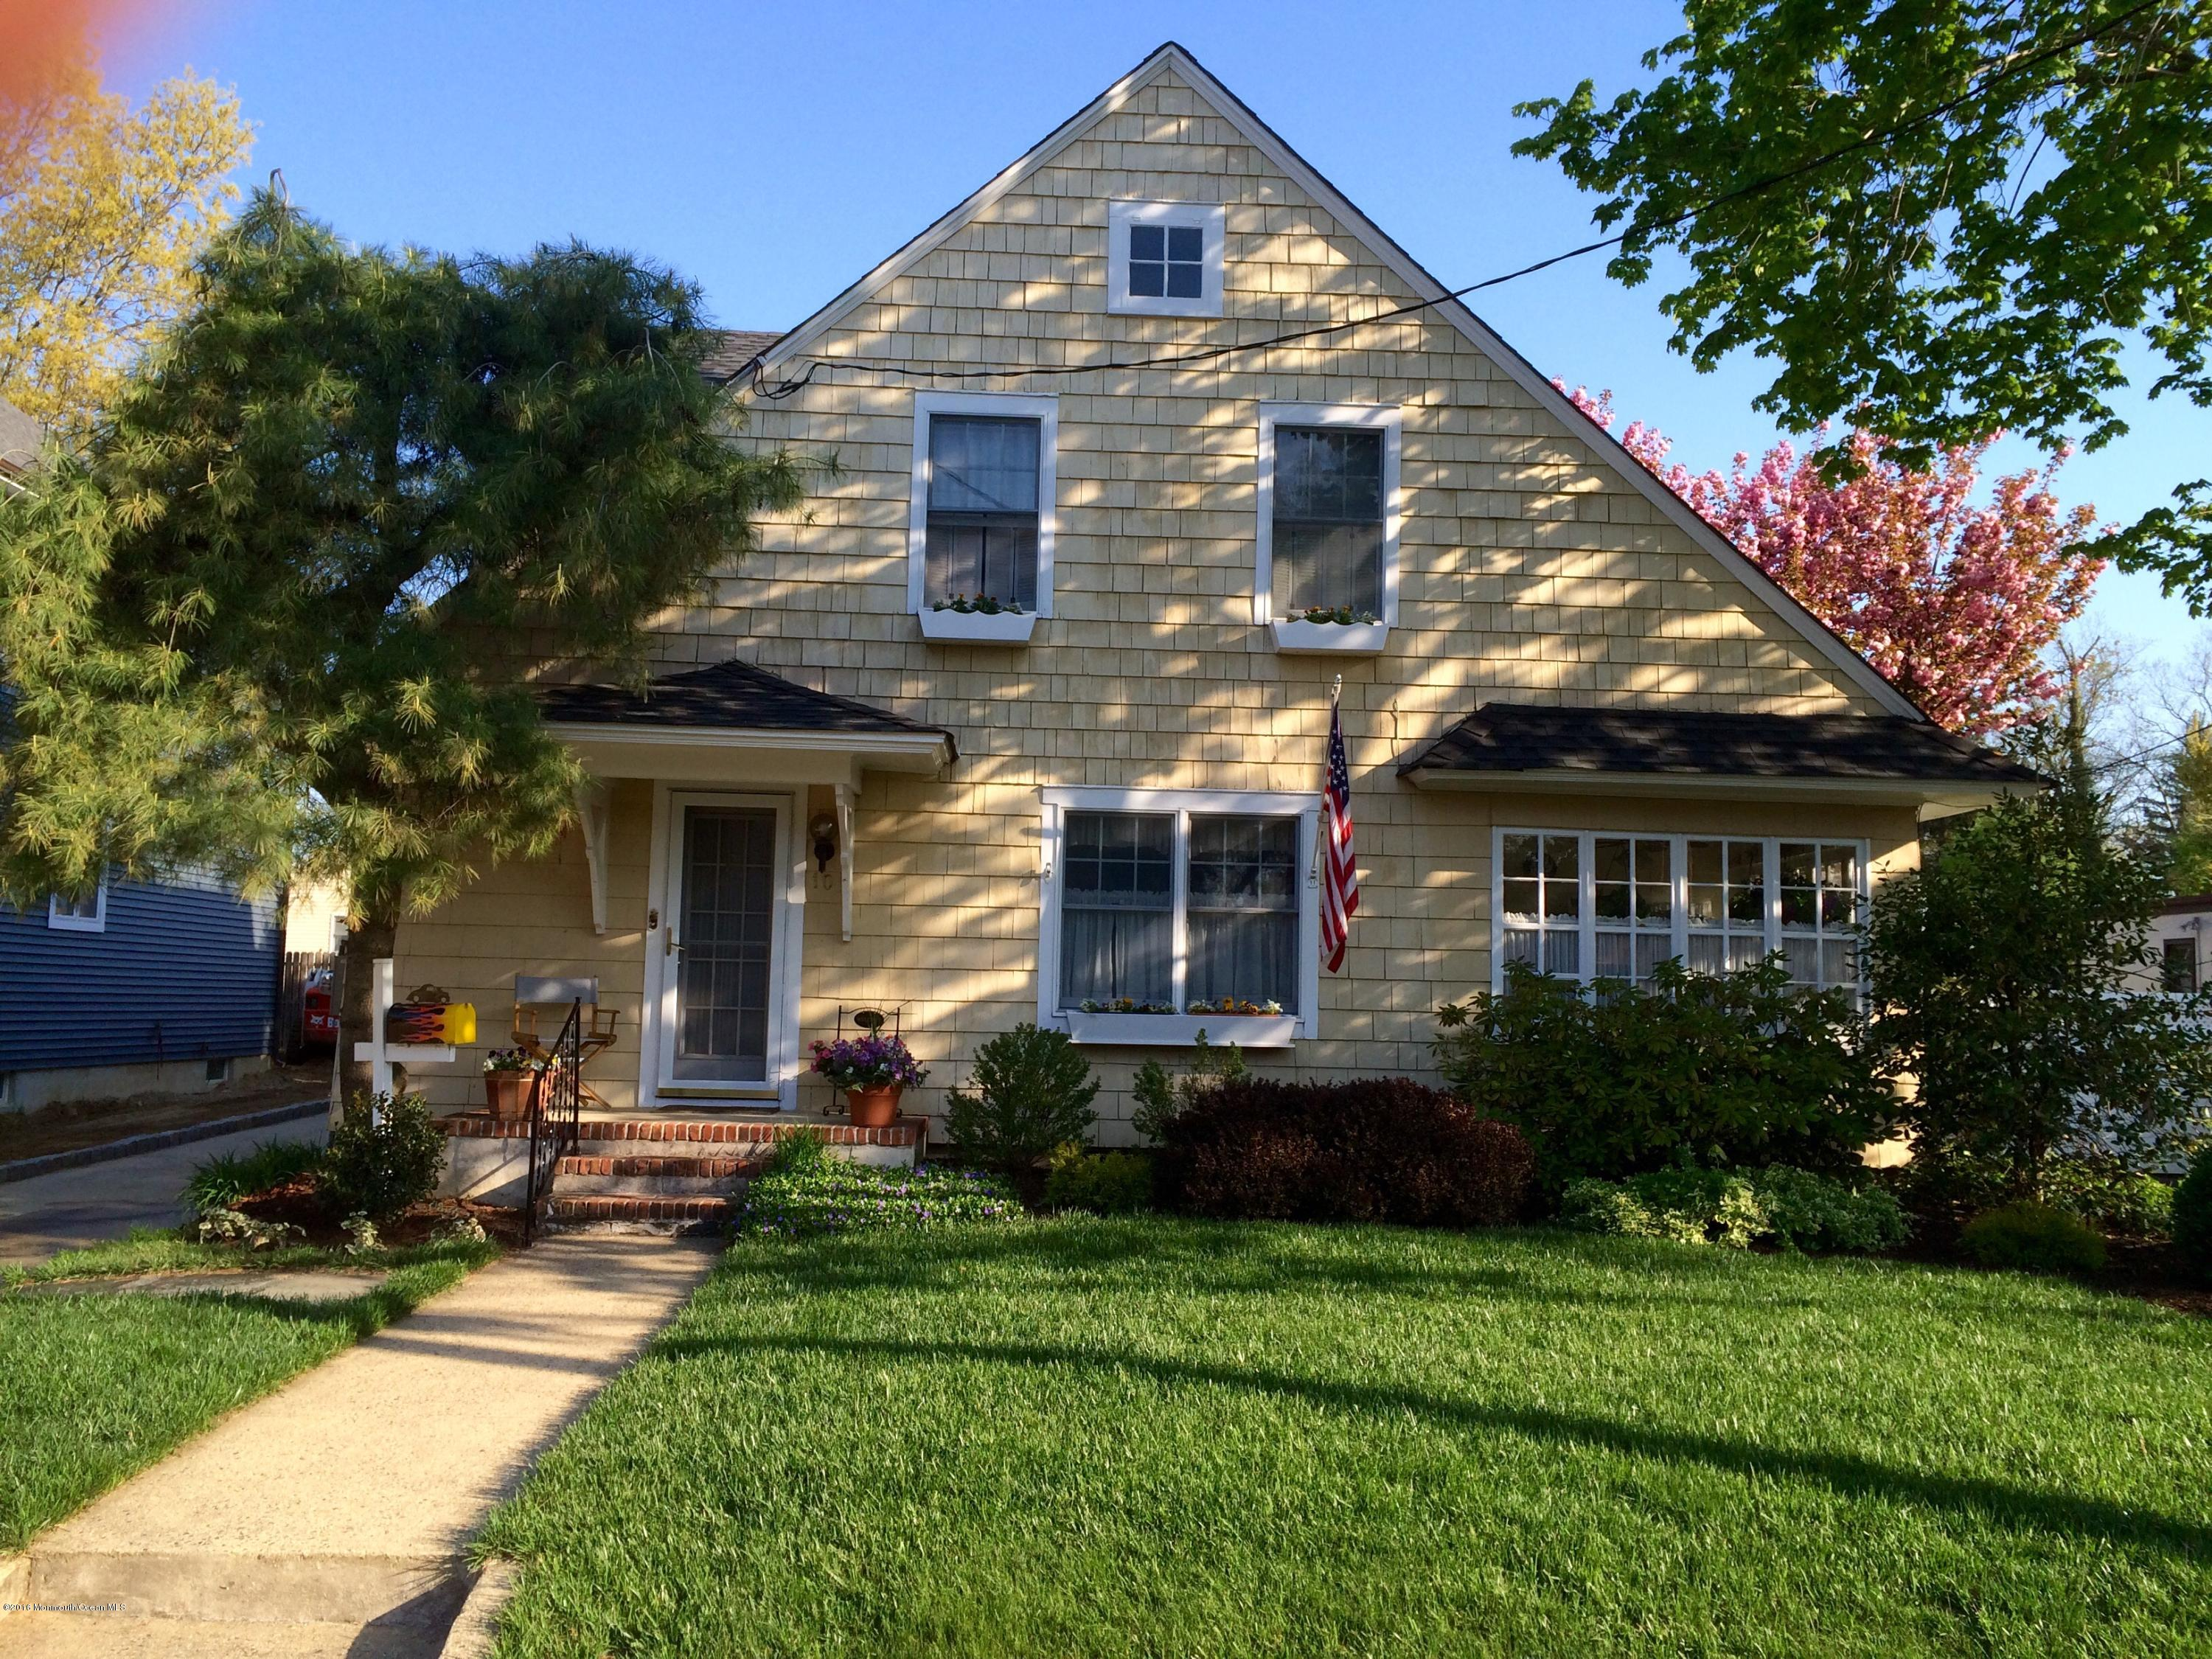 Photo of home for sale at 10 Carpenter Street Street, Red Bank NJ